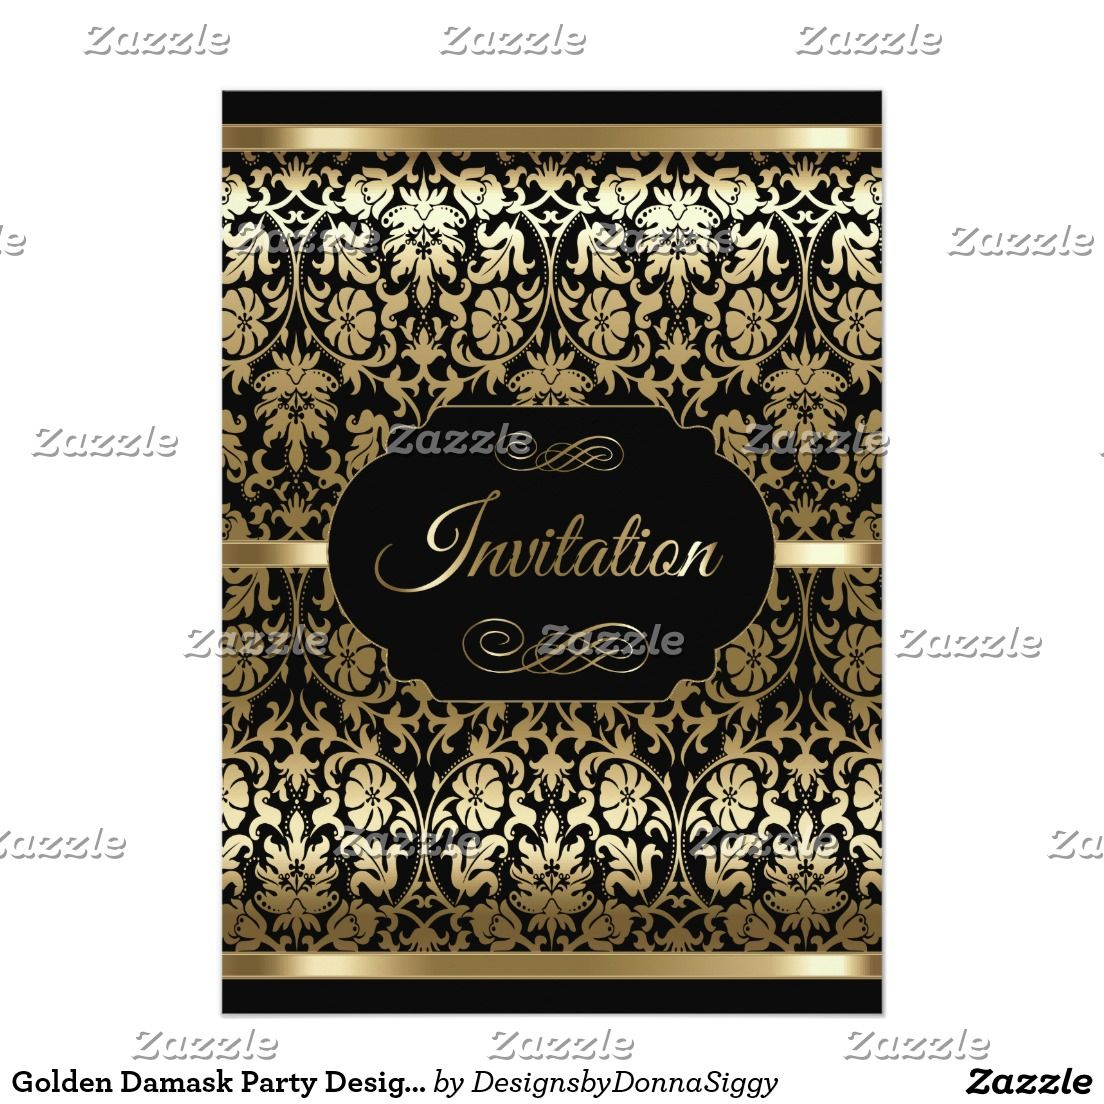 Pure Golden Damask Party Design - All Purpose Card